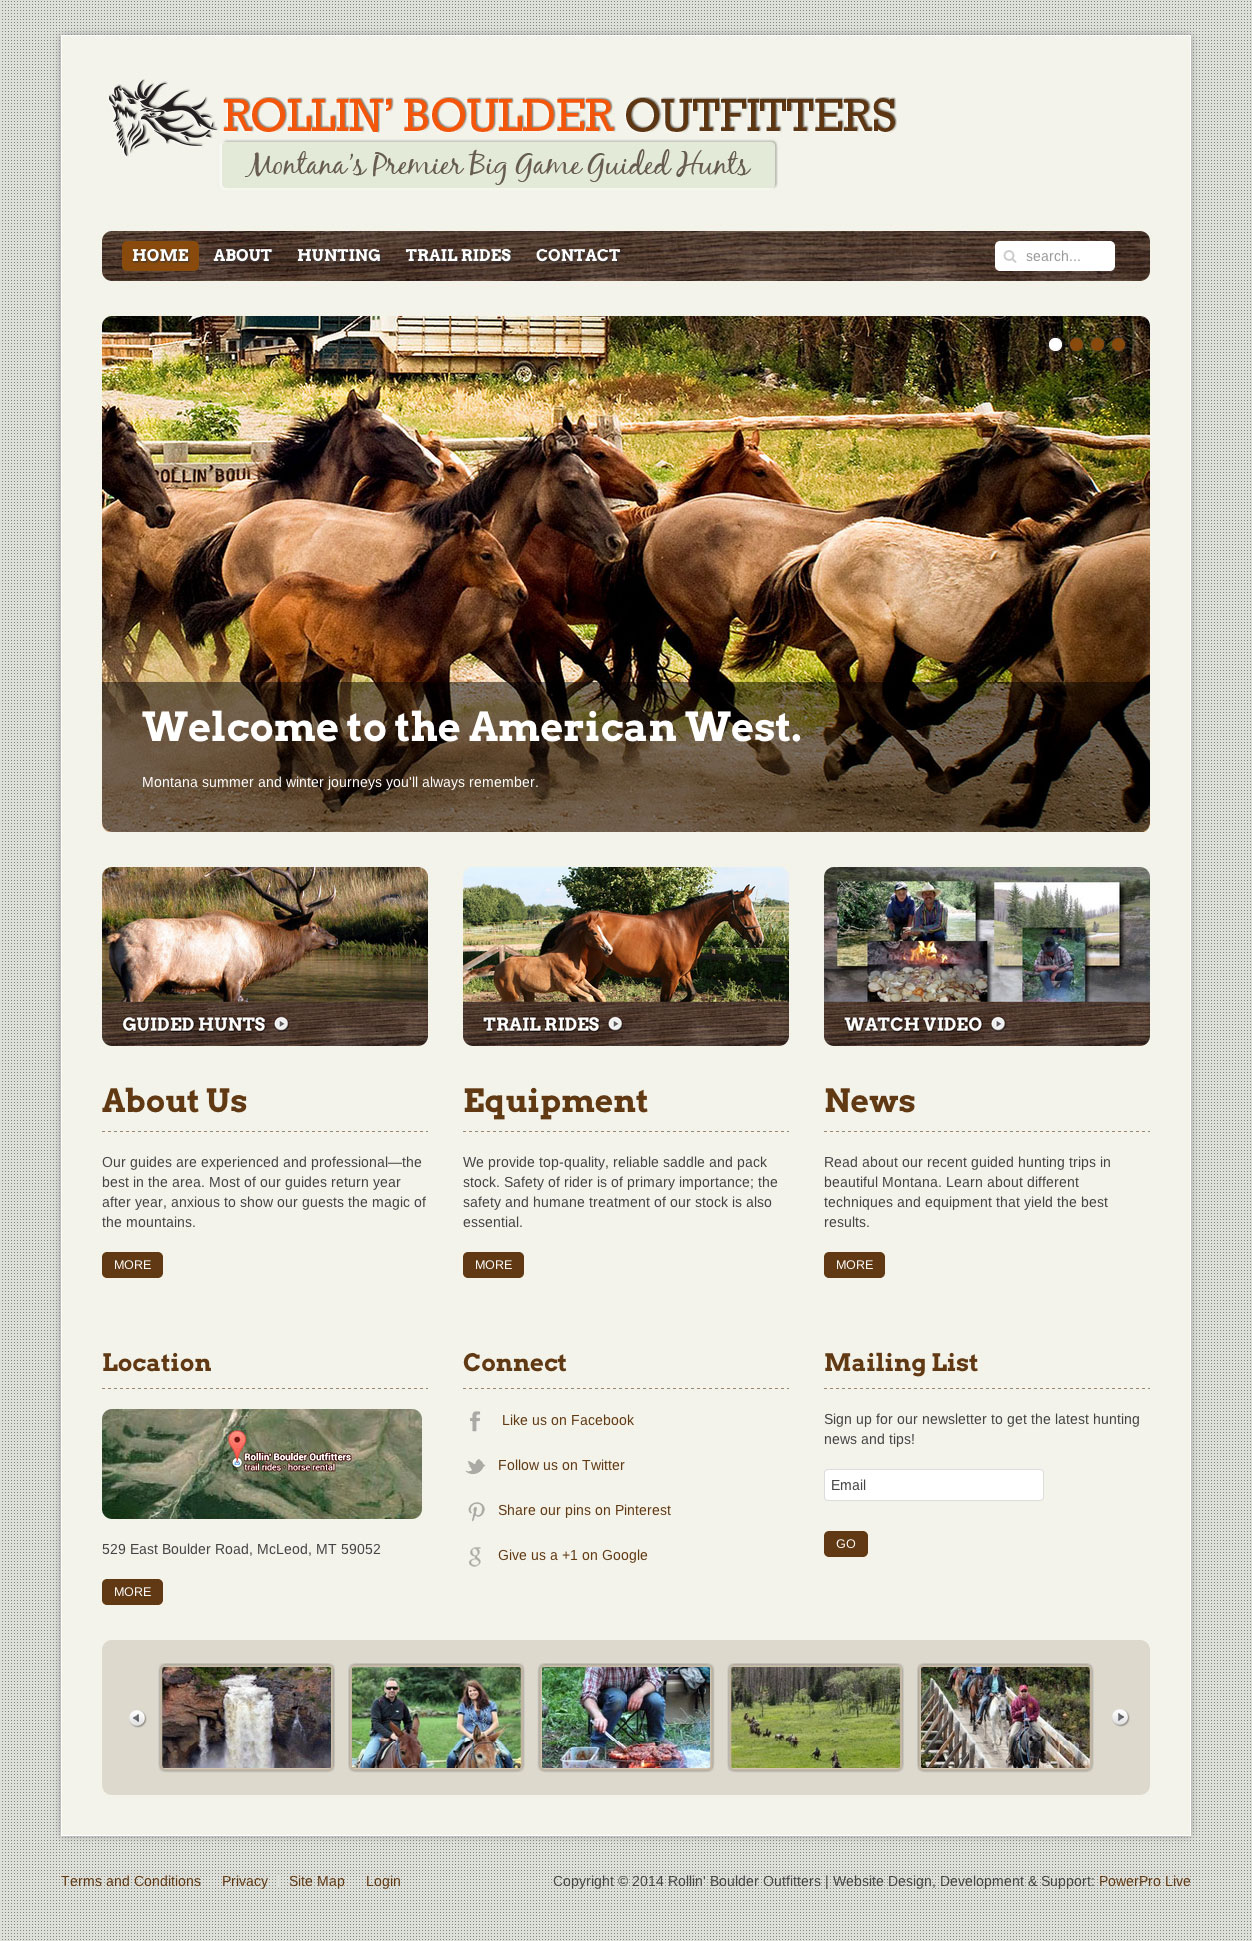 rollin-boulder-outfitters-website